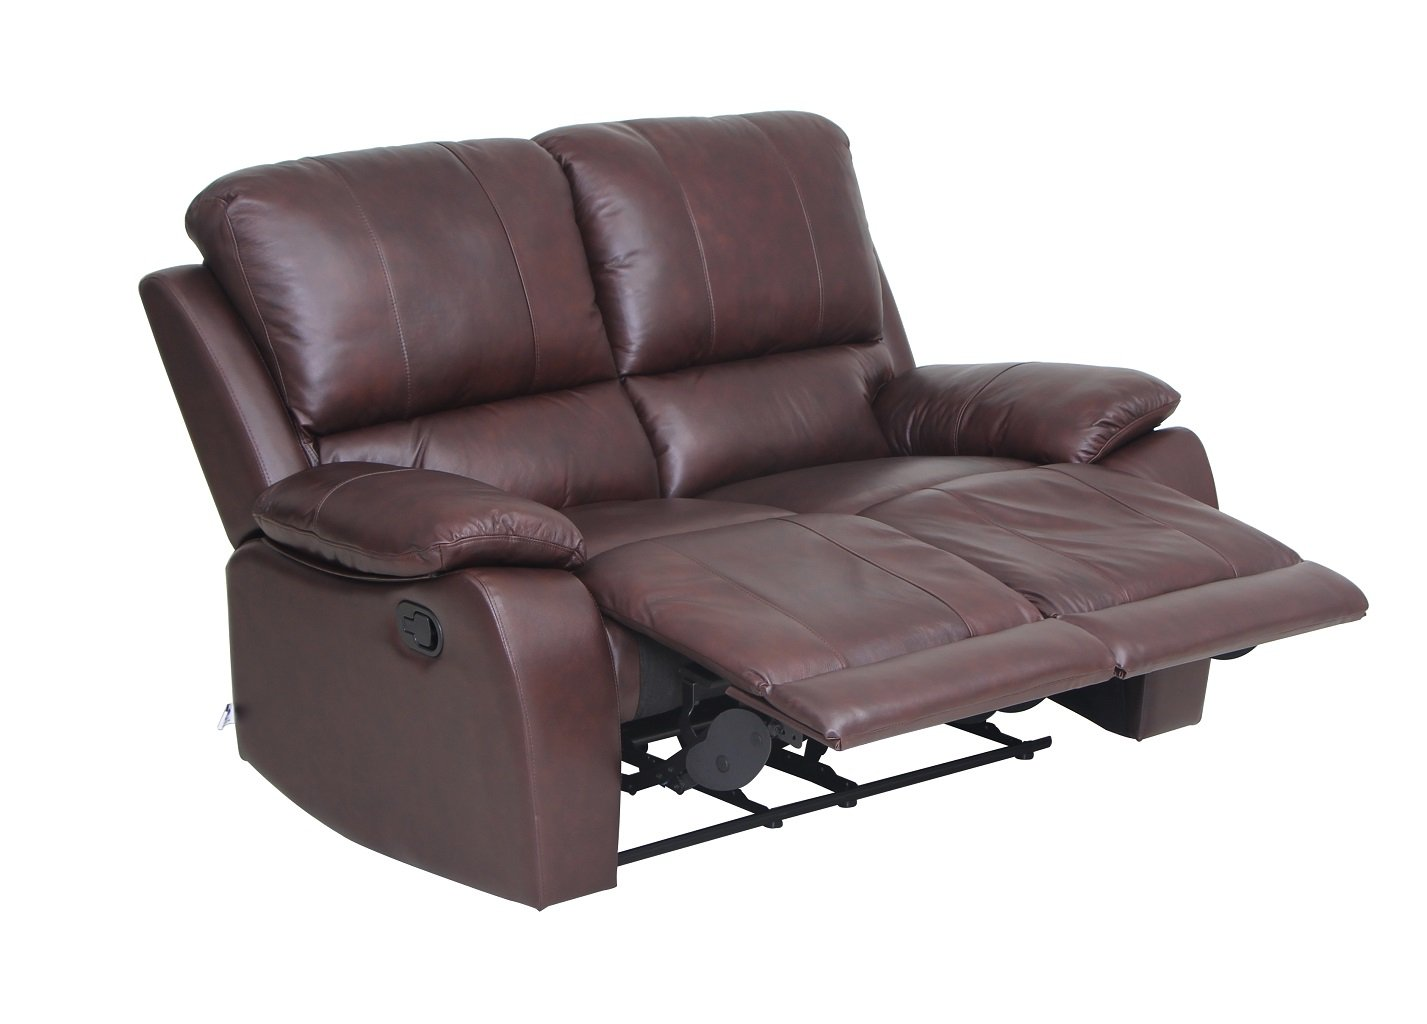 Amazon com vh furniture classic and traditional top grain leather sofa set loveseat with overstuff armrest headrest 2 seater brown home kitchen